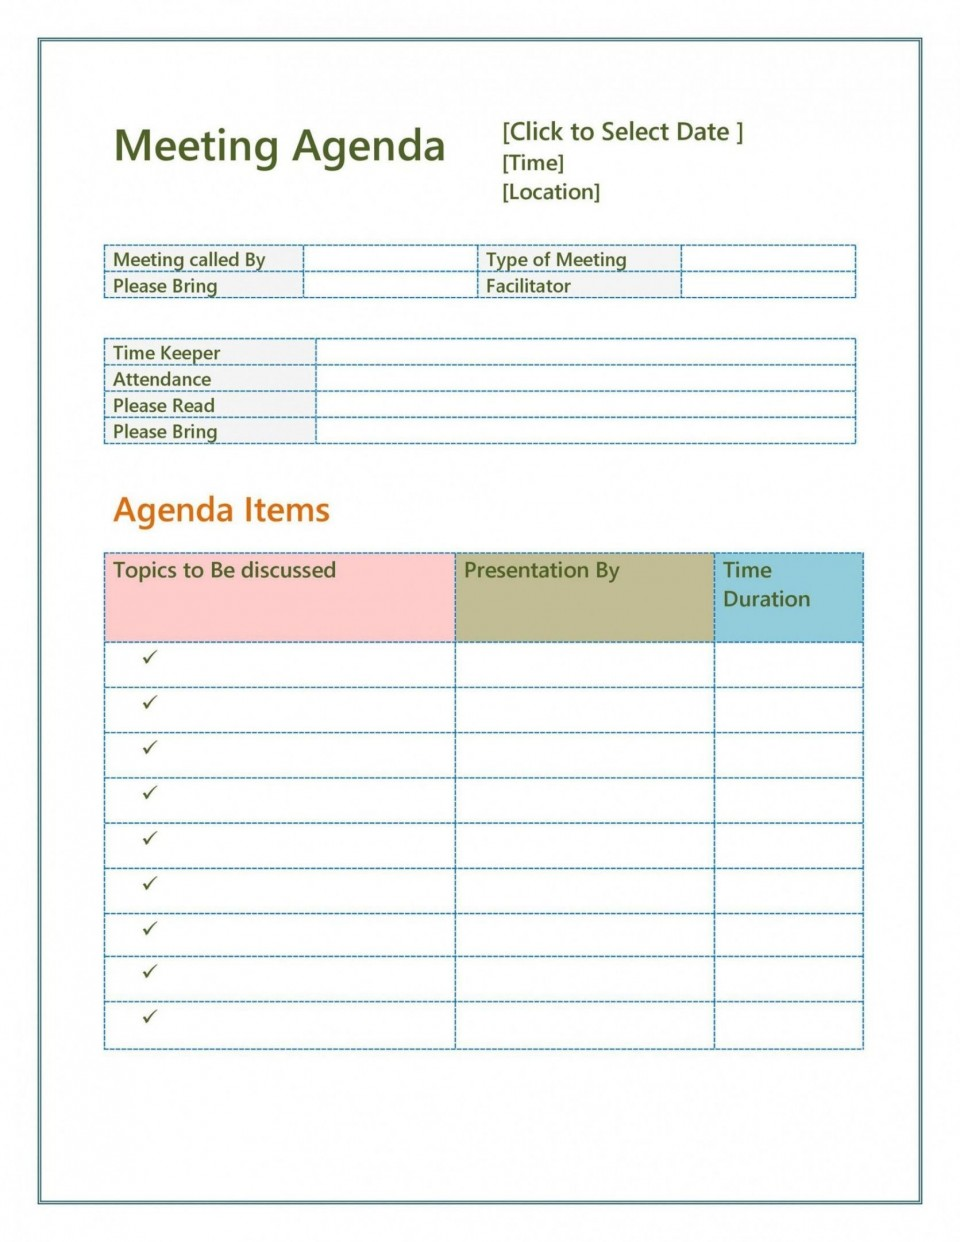 009 Archaicawful Meeting Agenda Template Word Highest Clarity  Microsoft Board 2010 Example960